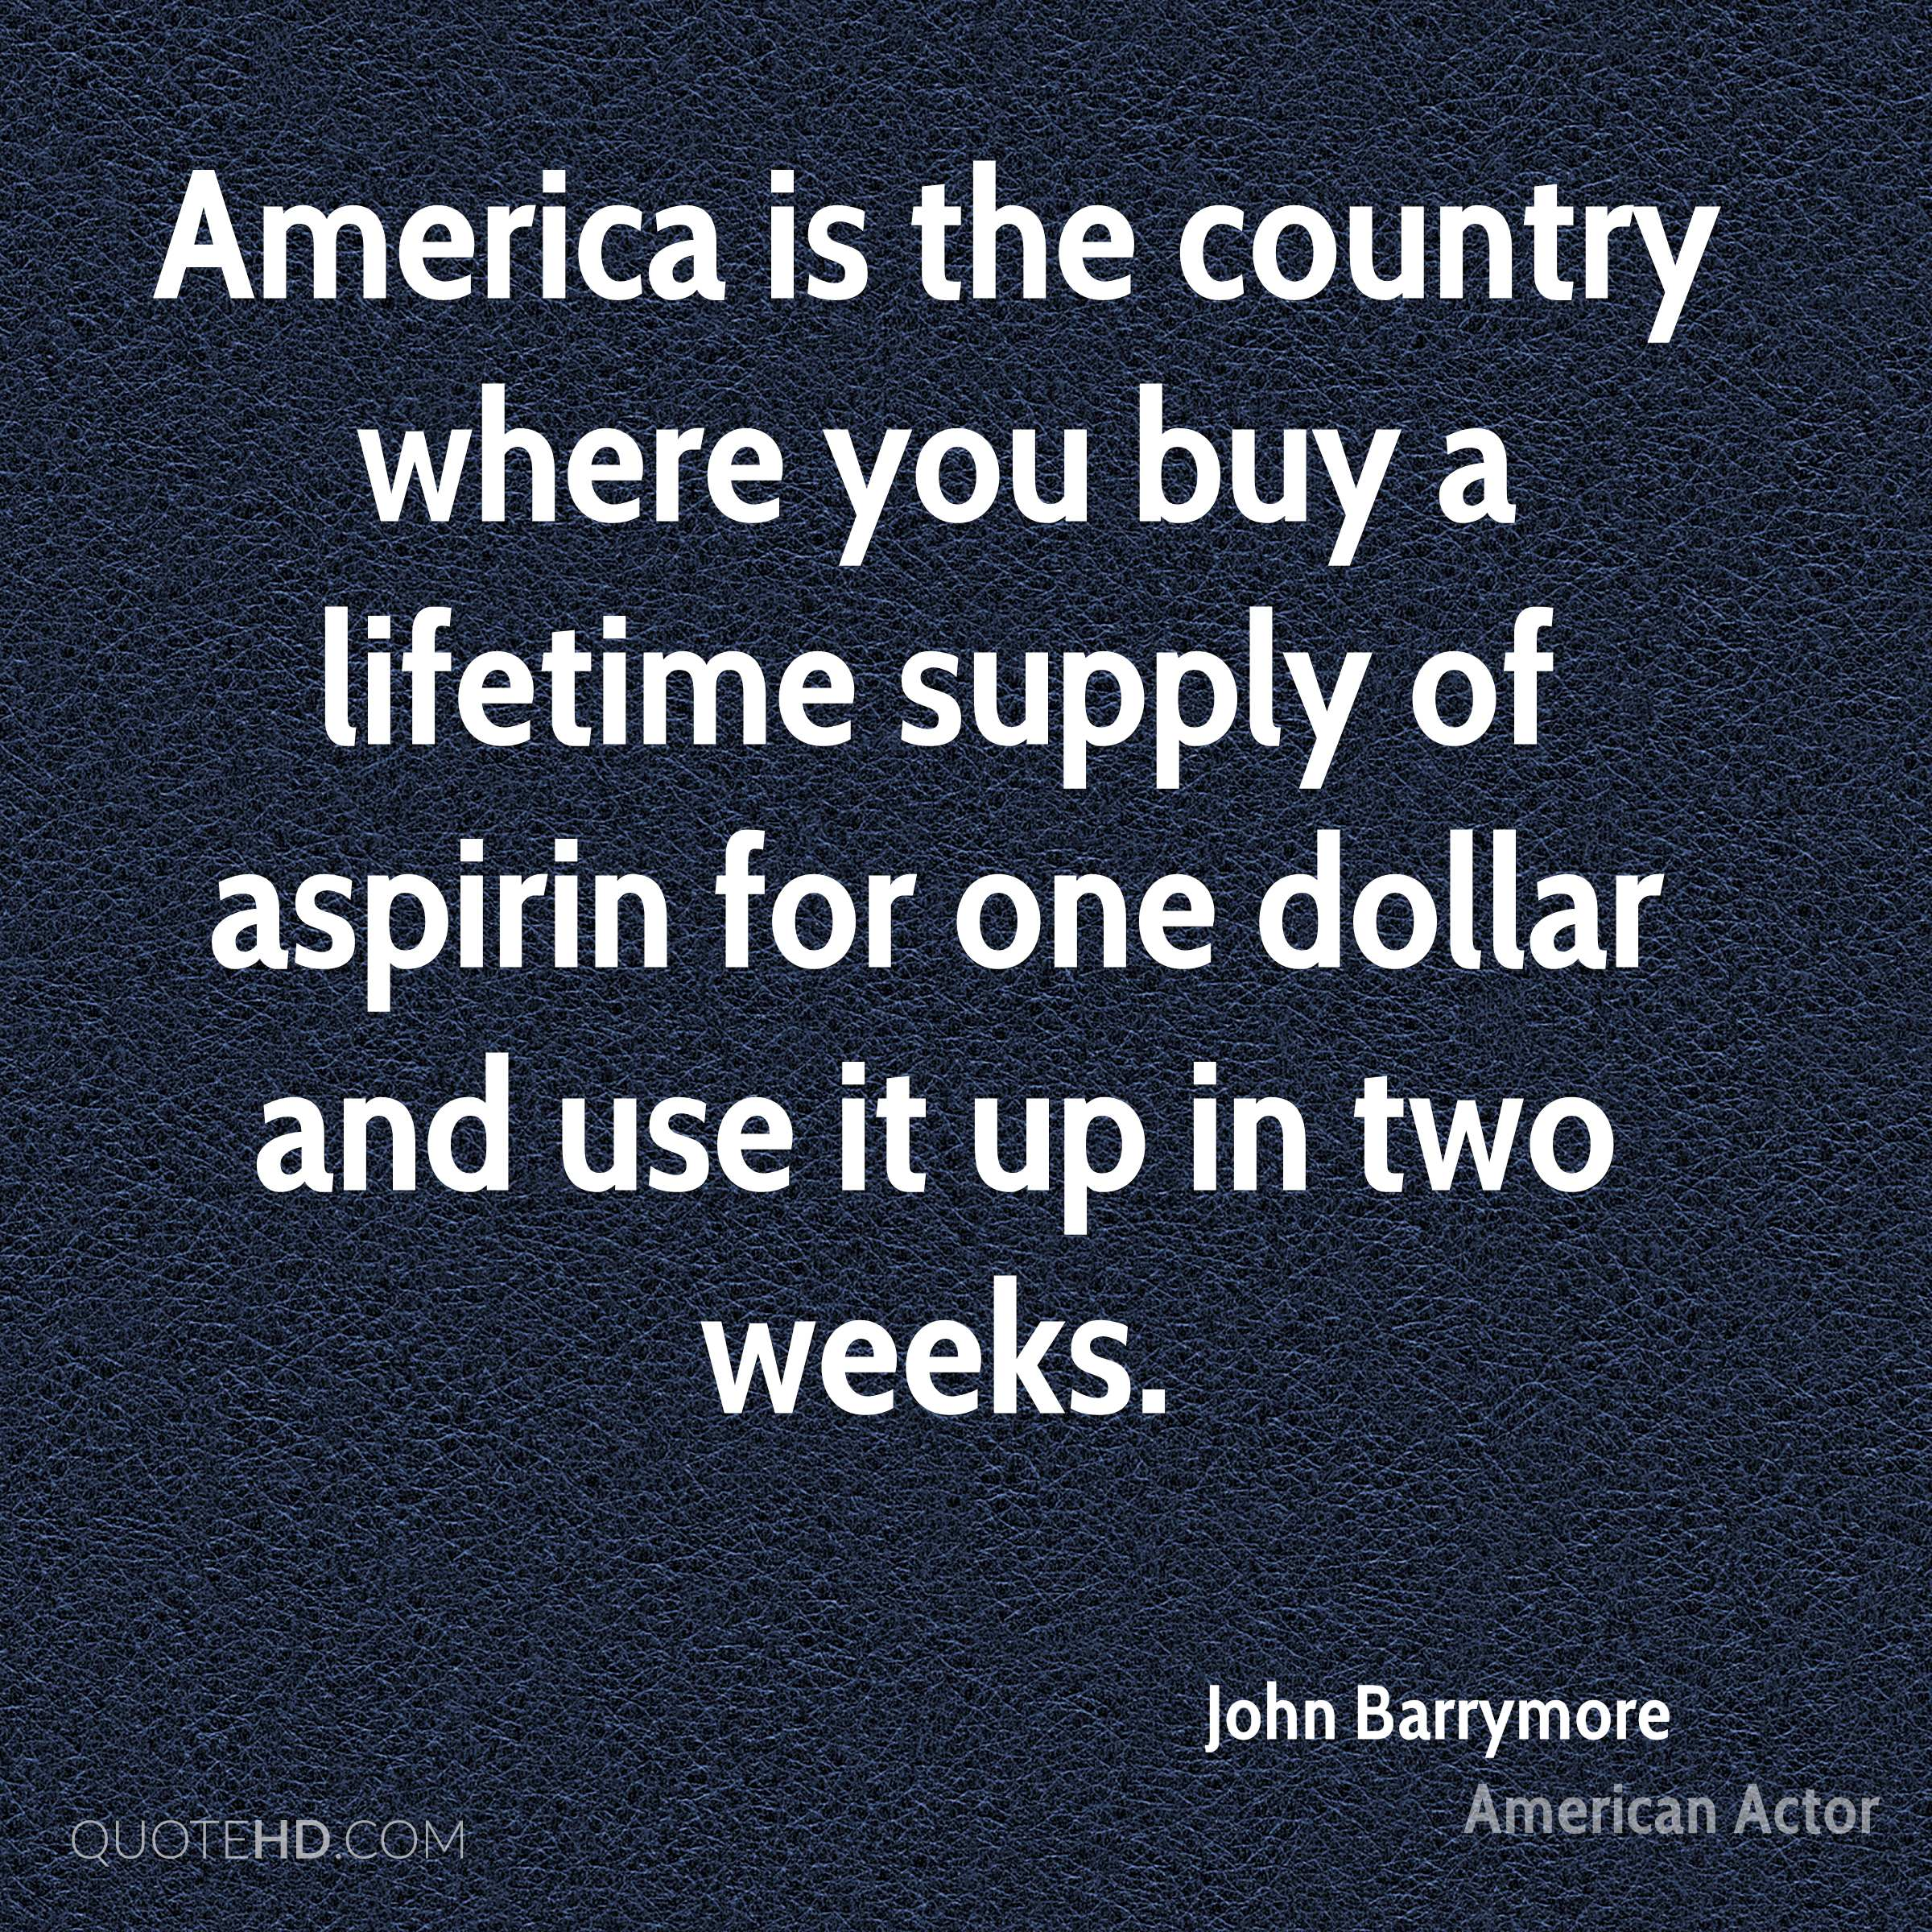 America is the country where you buy a lifetime supply of aspirin for one dollar and use it up in two weeks.